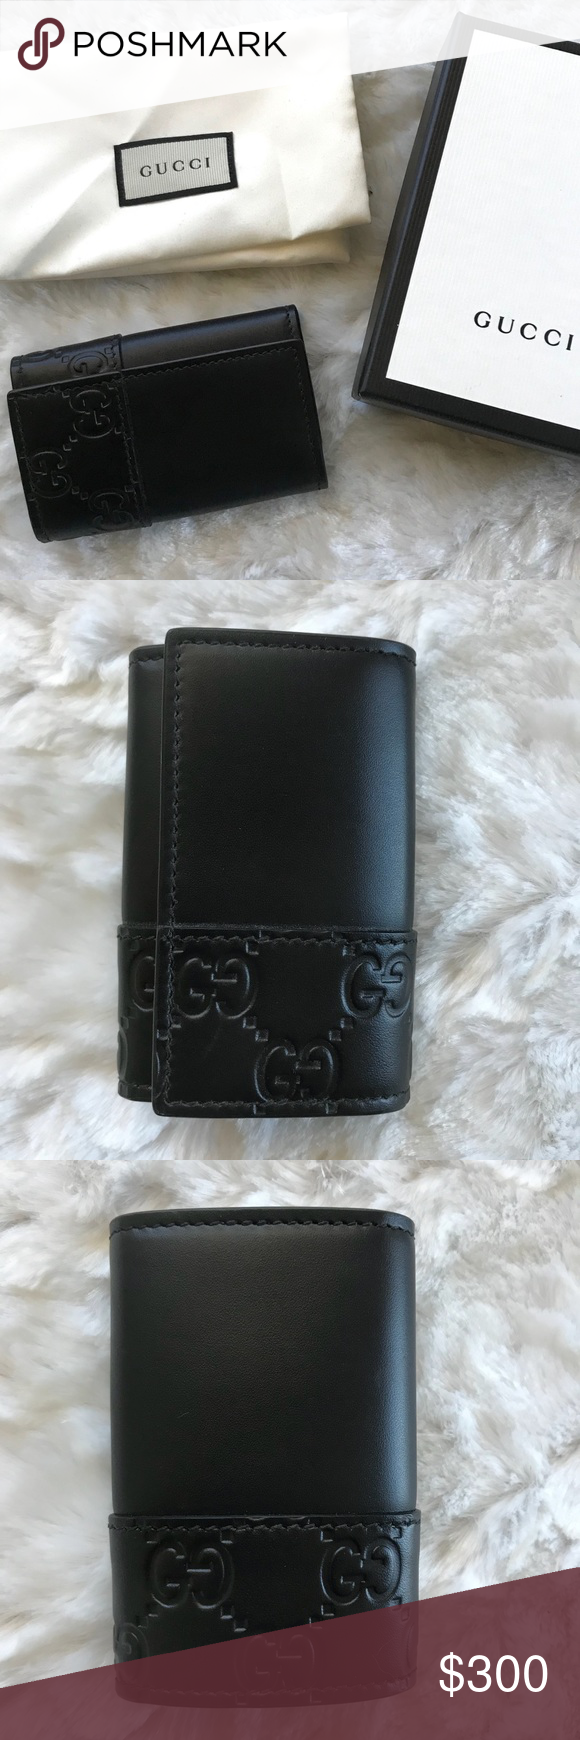 9391cfd1f18 NEW Gucci Key Holder Black Wallet Case Guccissima New with original box    dust bag Authentic